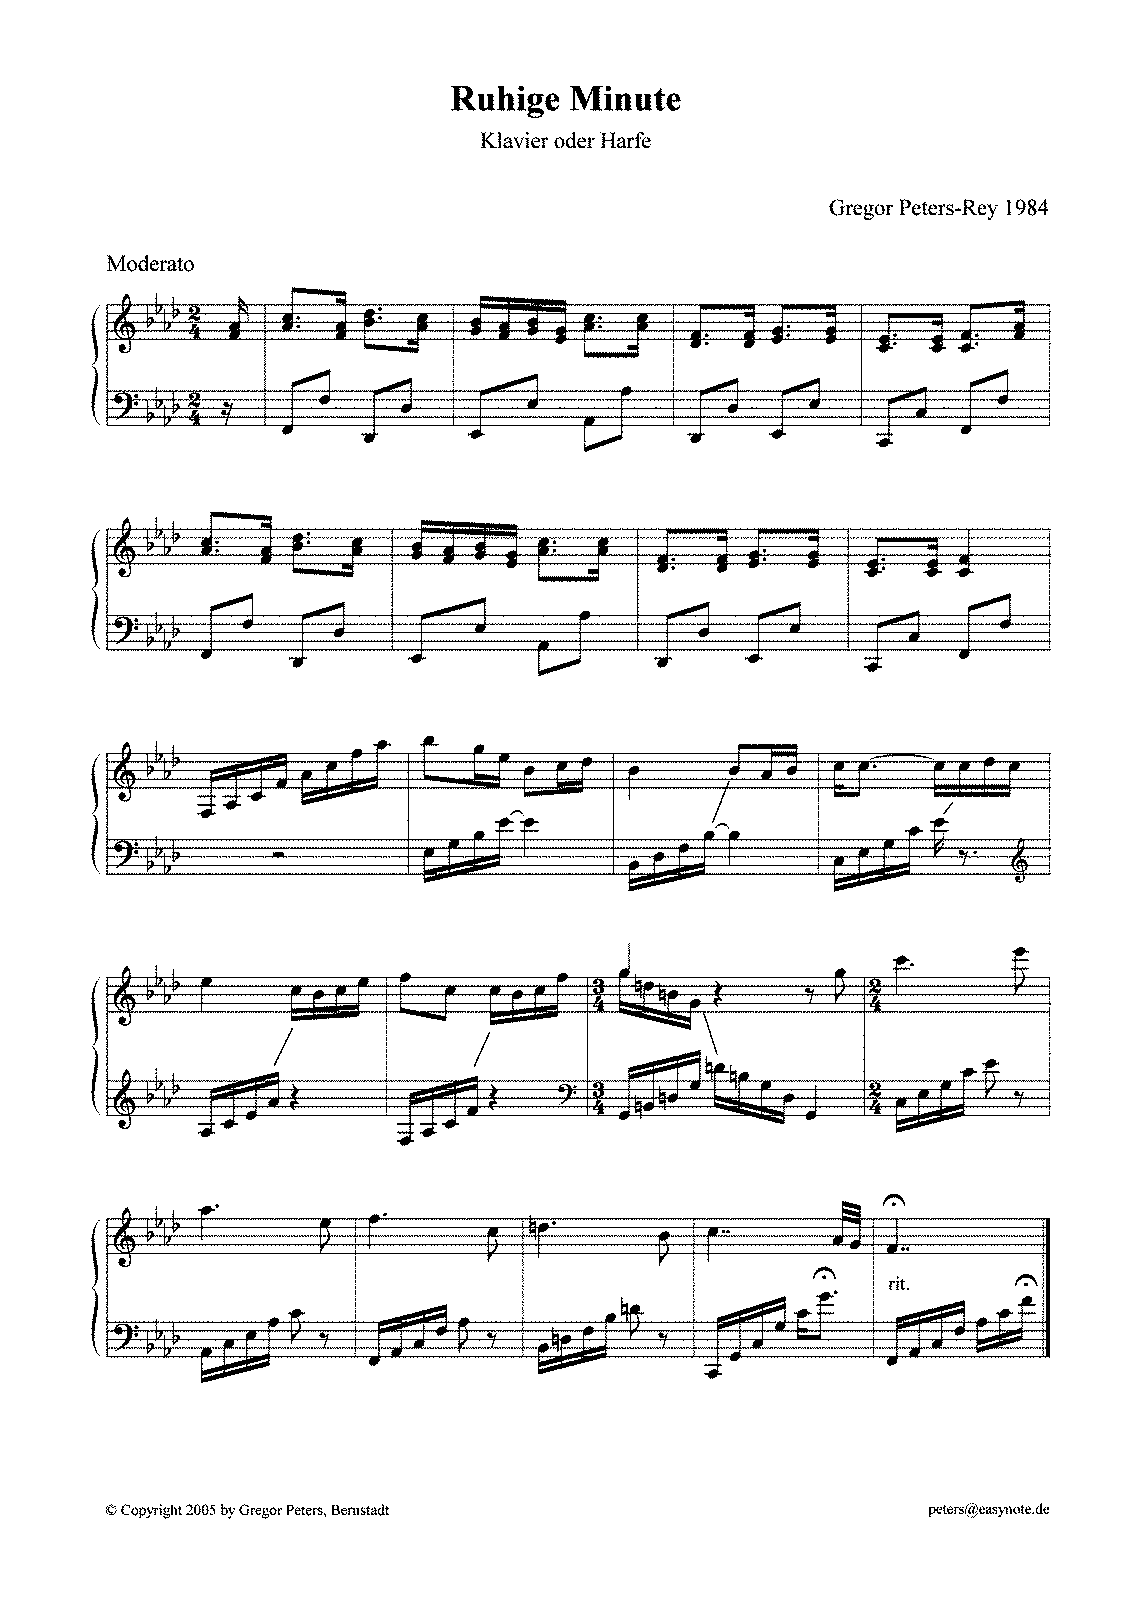 Peters-Rey Ruhige Minute.pdf